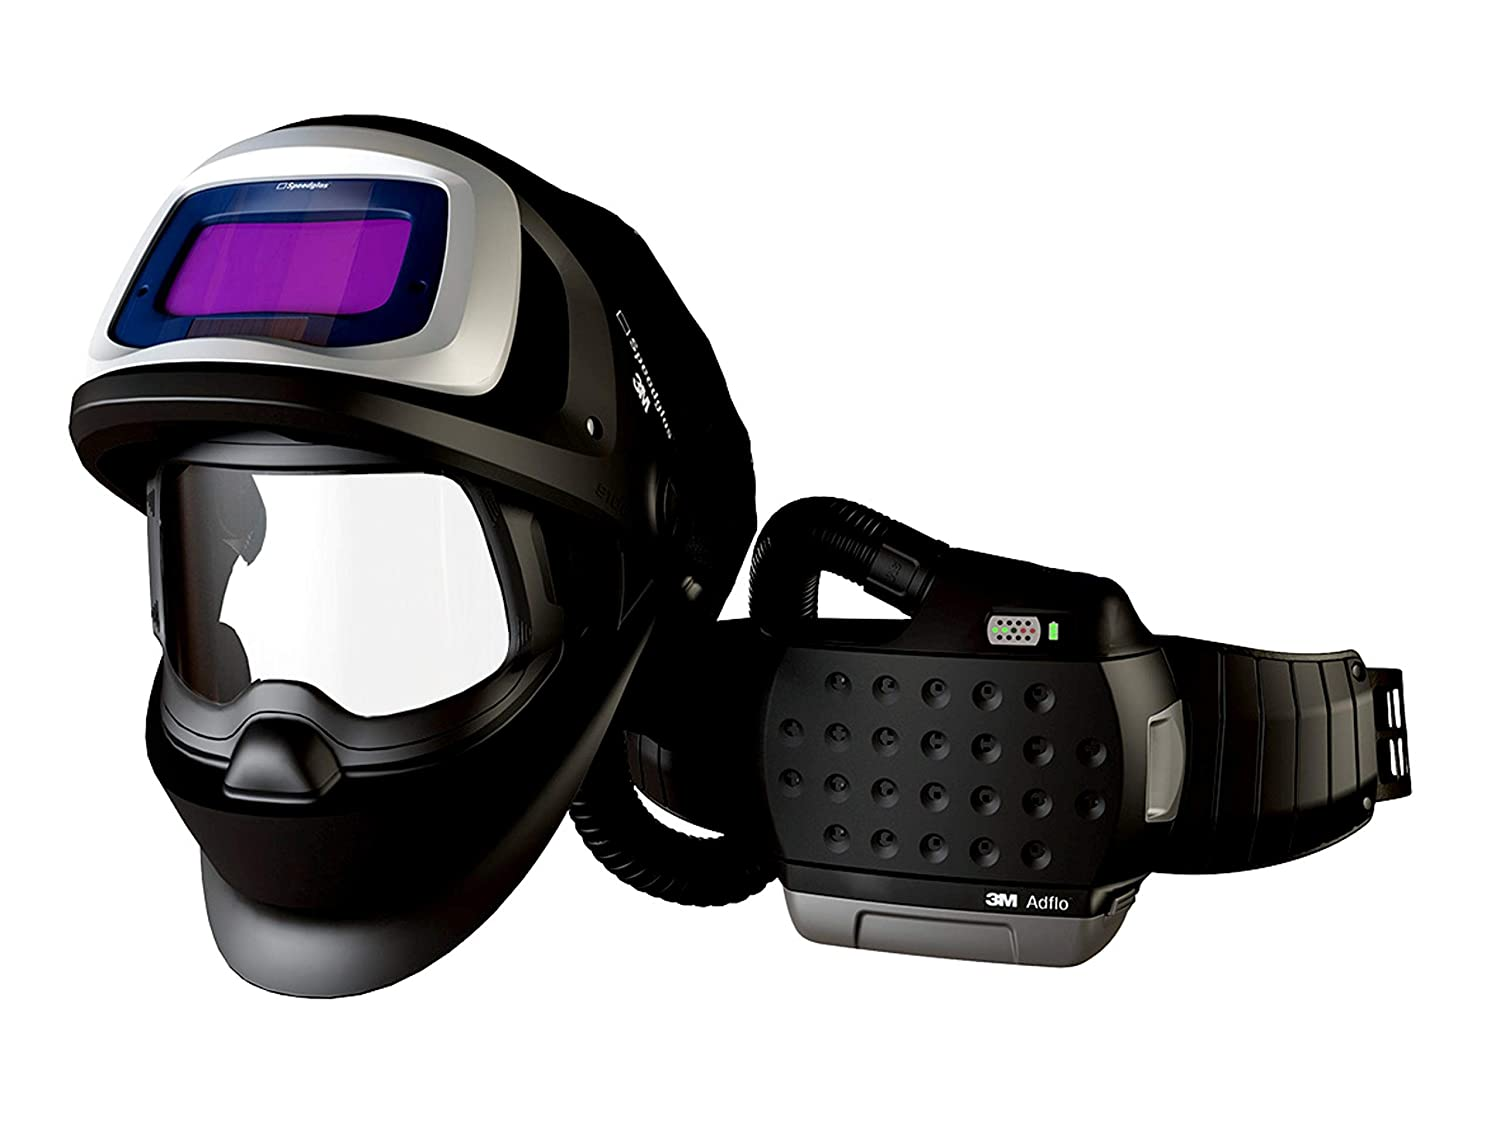 Image of 3M Adflo Powered Air Purifying Respirator He System with 3M Speedglas Welding Helmet 9100 Fx-Air, 36-1101-20Sw, 1 Ea/Case